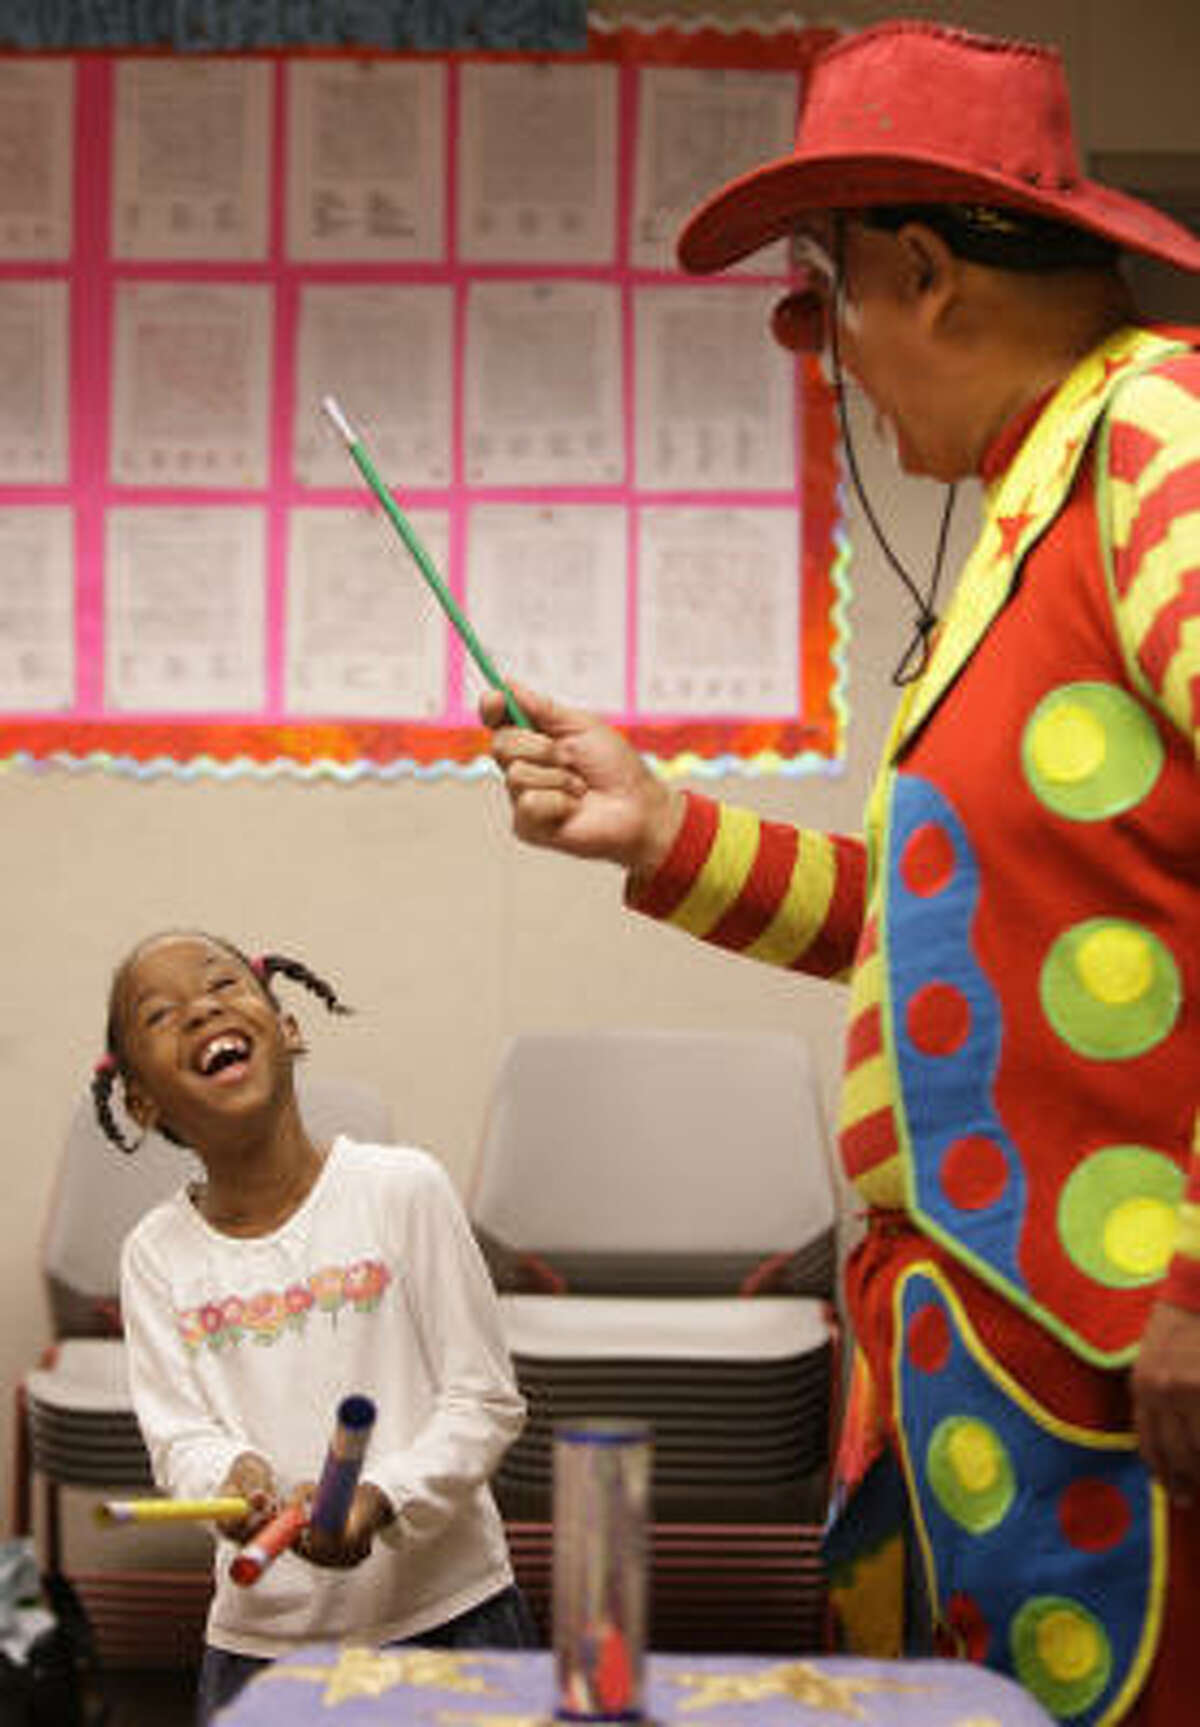 Dominique Bufkin-Lewis, 6, laughs as she assists Happy the Clown performed by Ruben Ramirez during program at Walter Neighbor Library in Houston. Programs for all ages such as science, crafts, games, and entertainers are offered throughout the summer as part of the 2010 Summer Reading Program at the Houston Public Libraries.